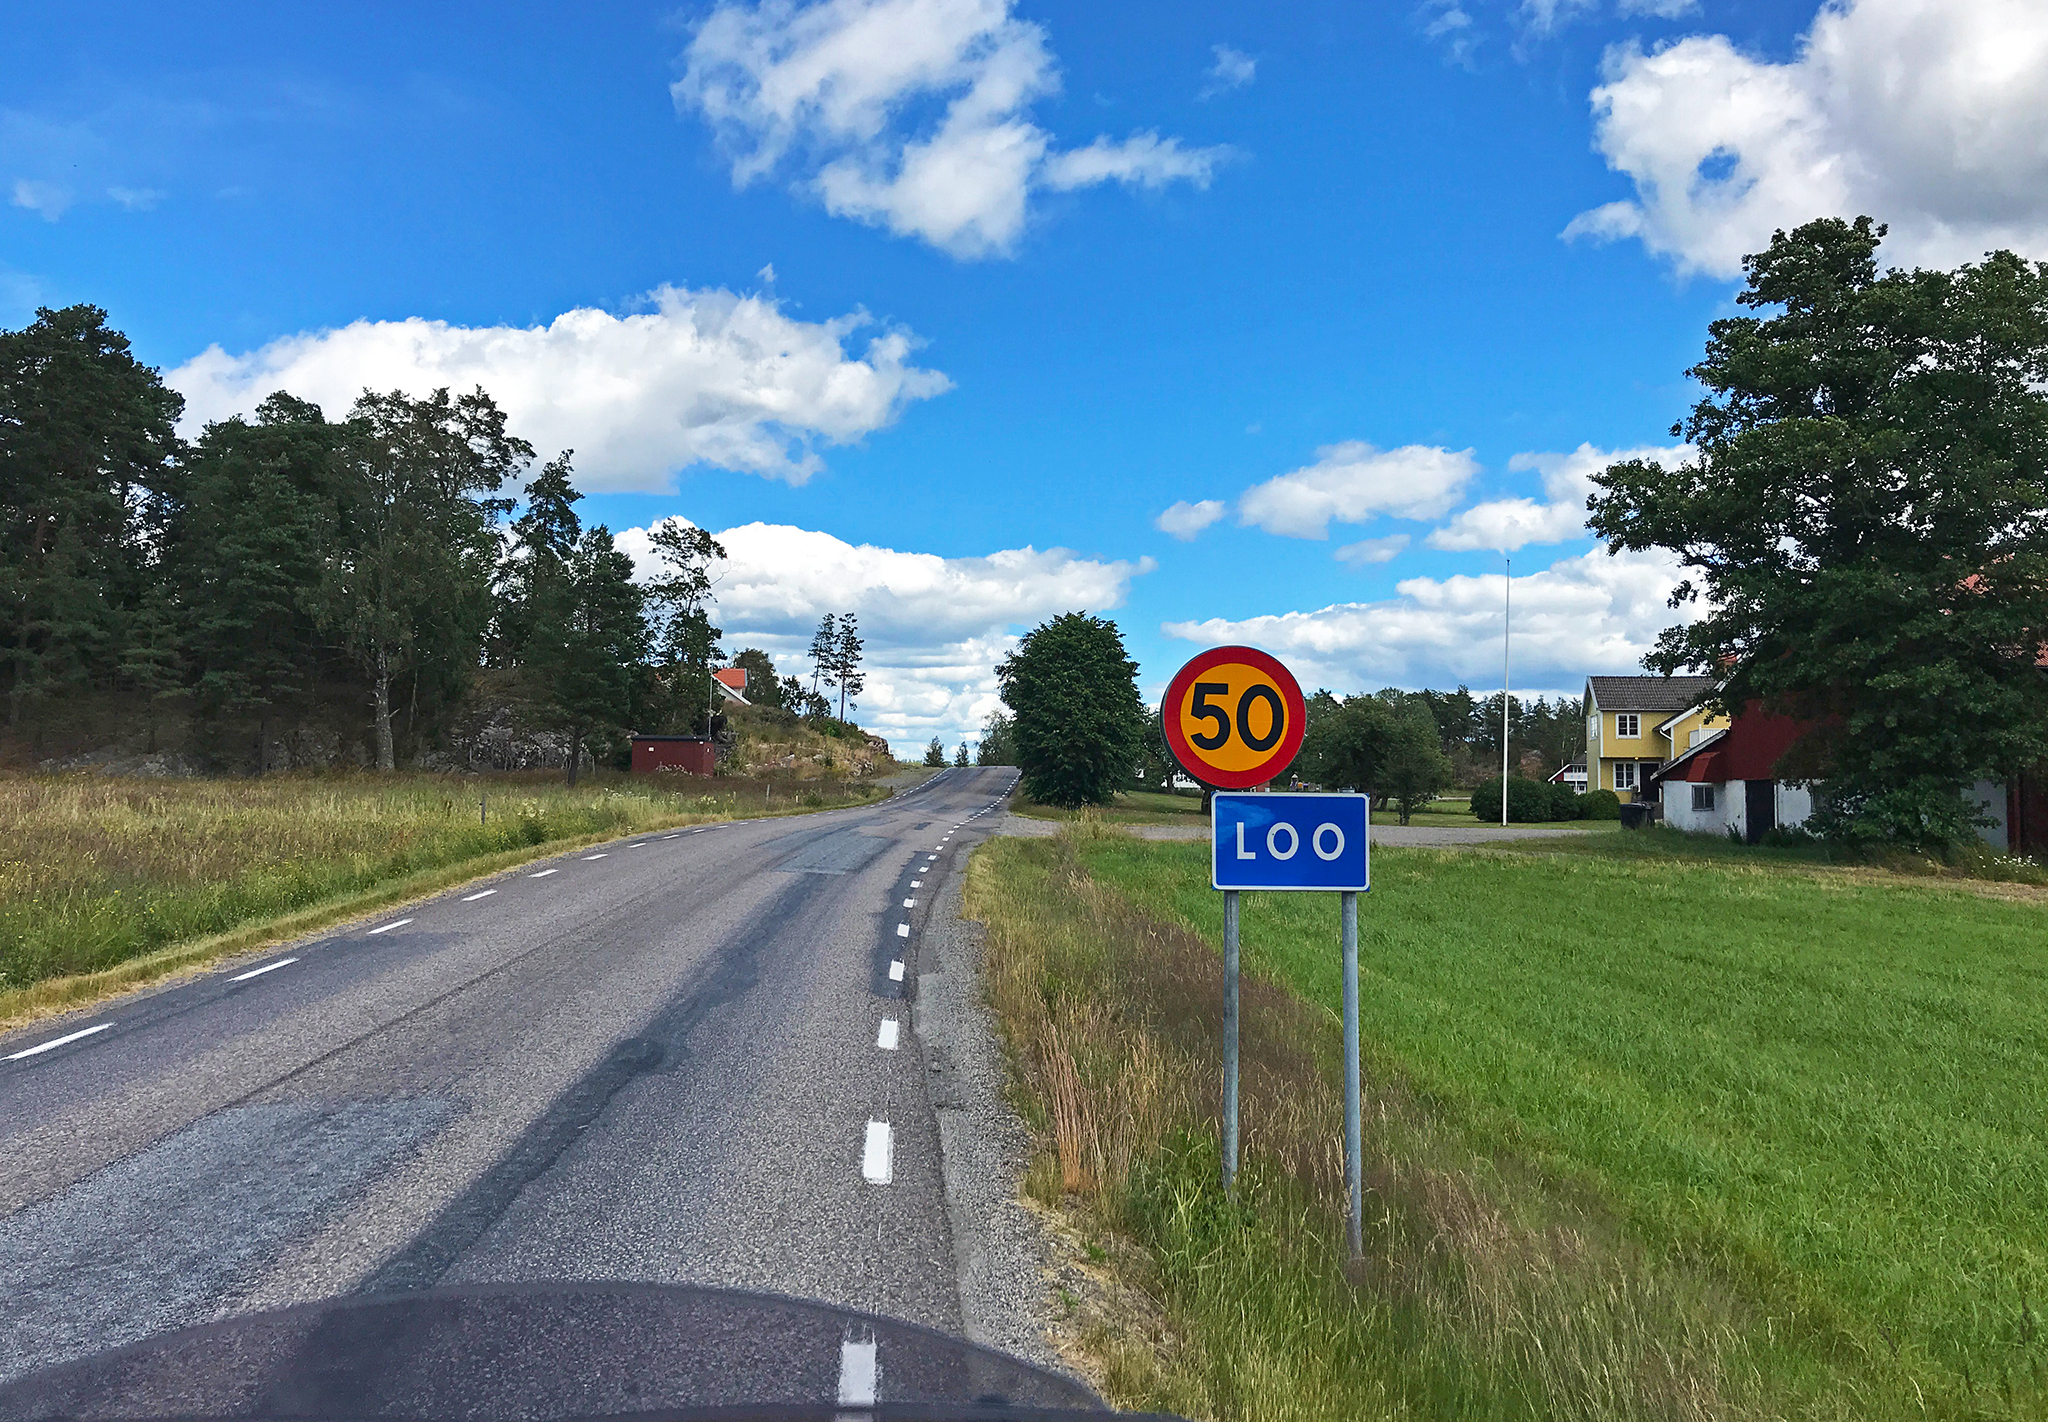 Loo - a place in Sweden